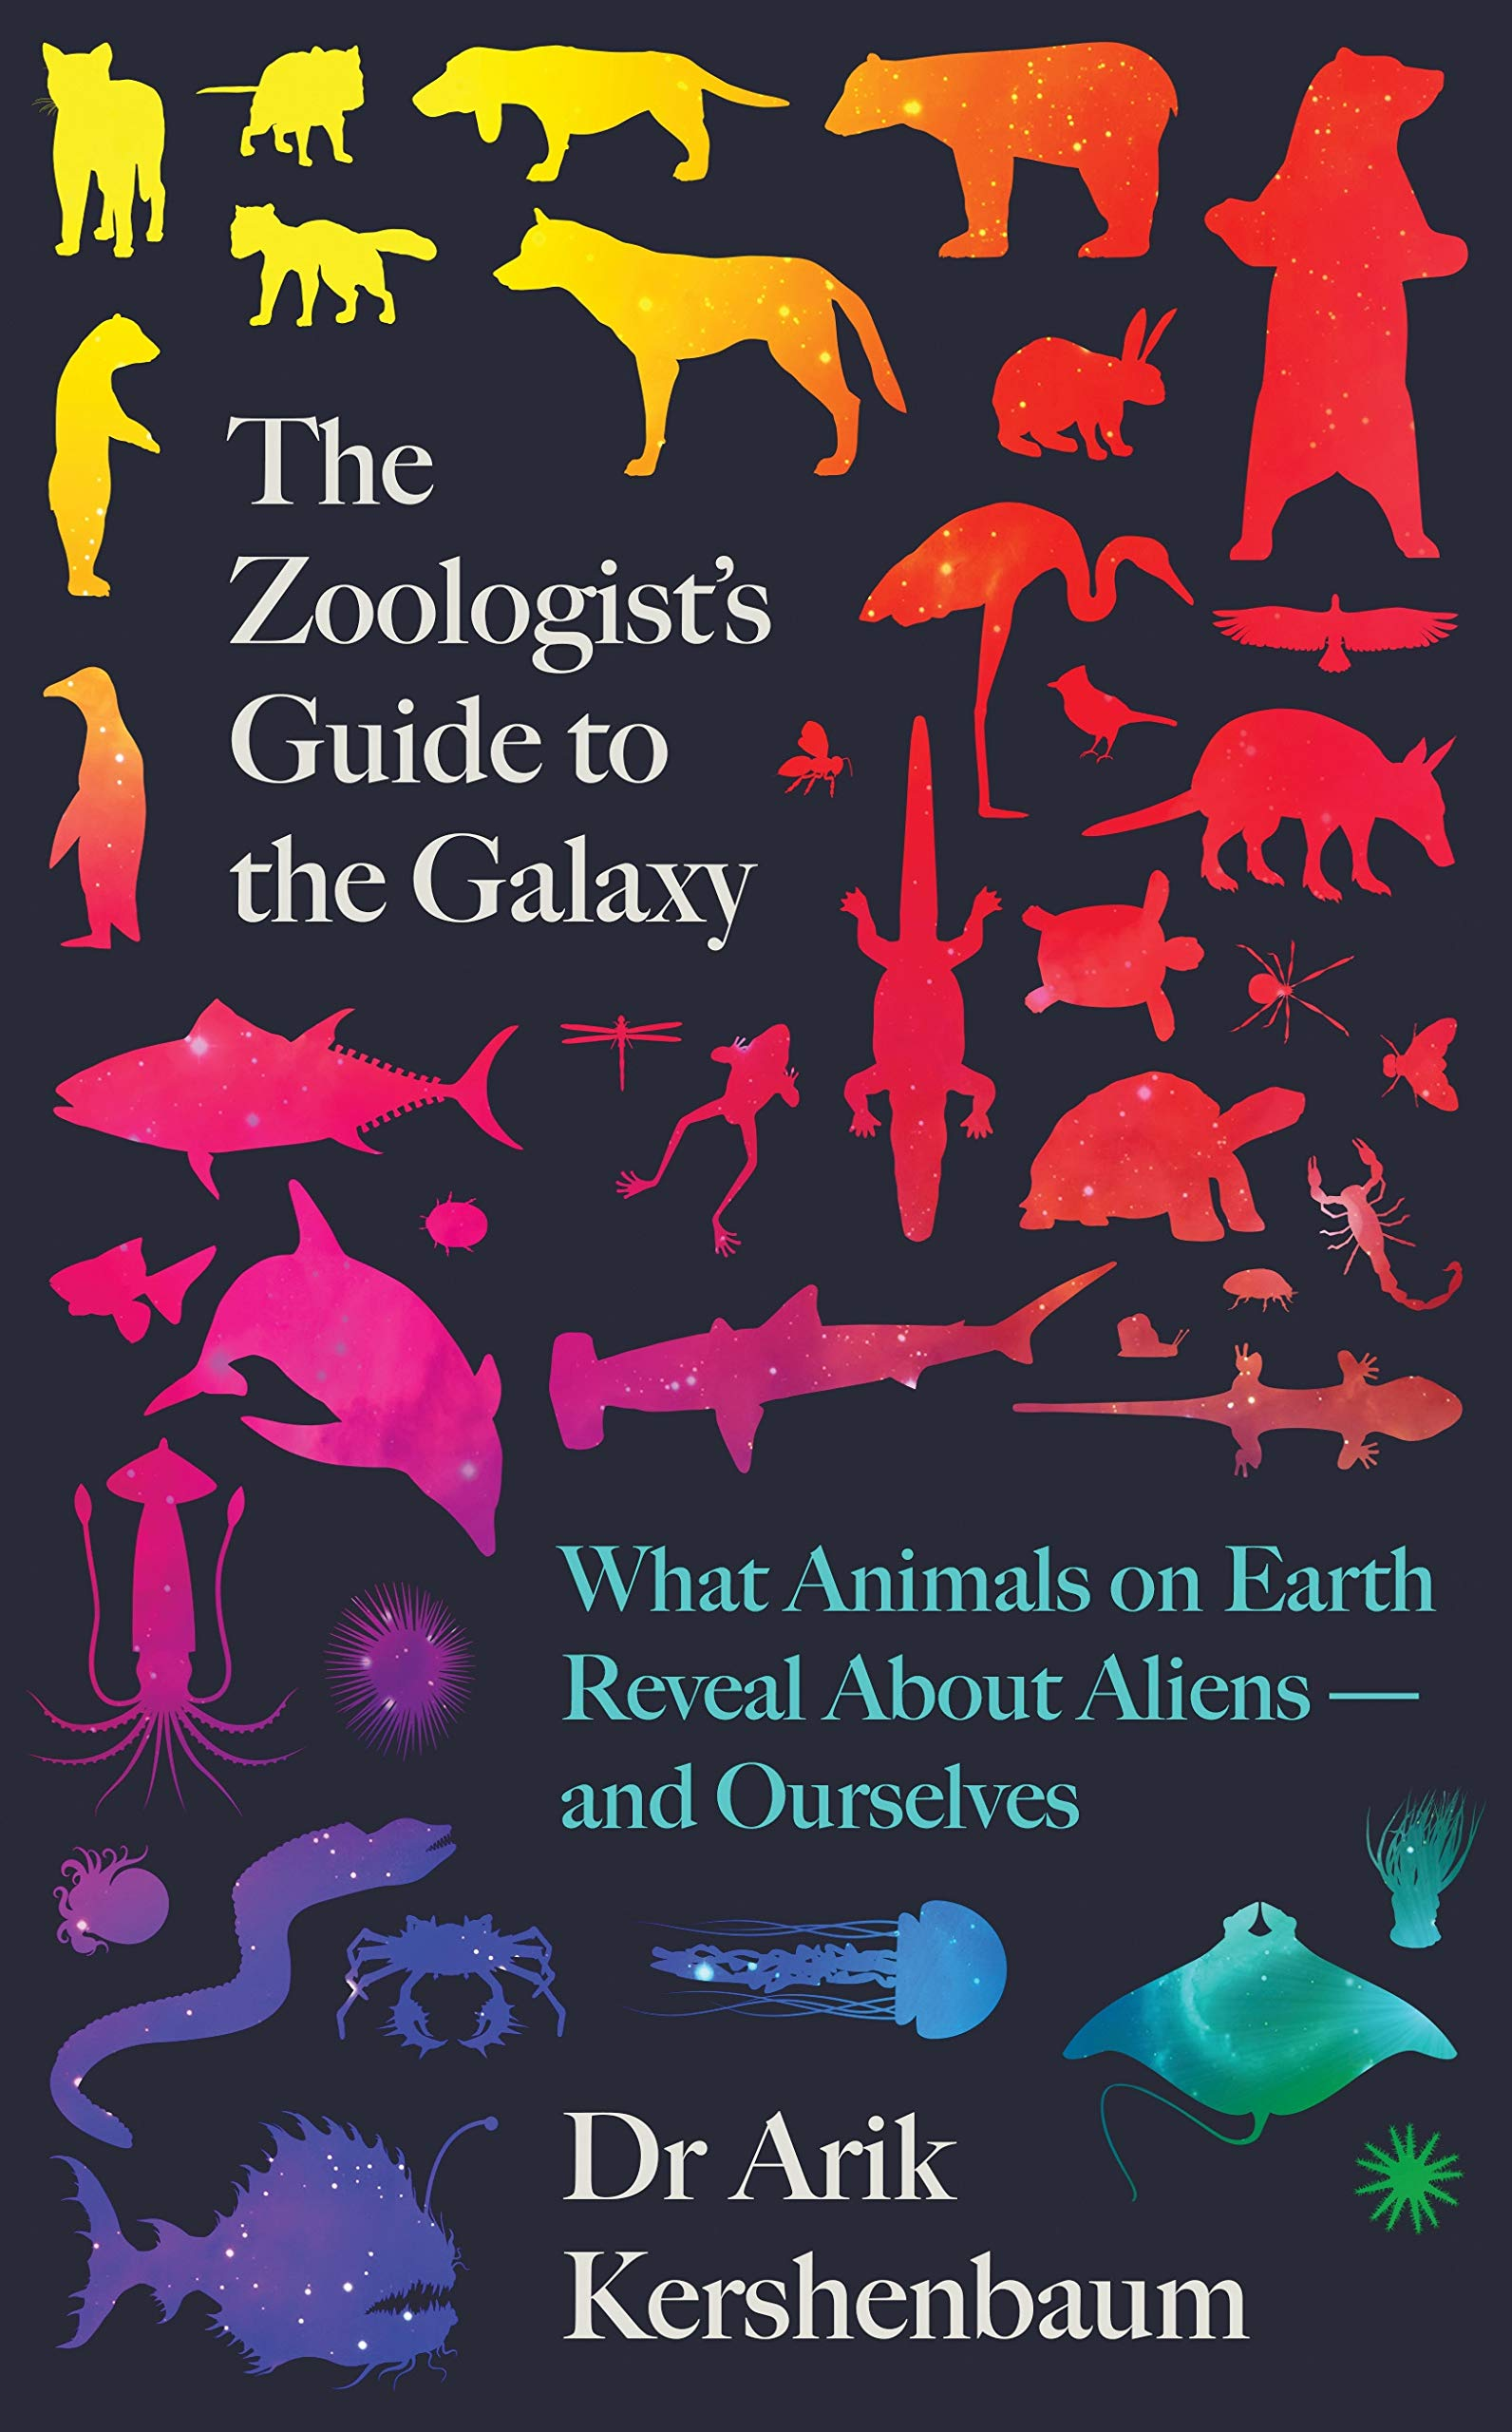 The Zoologist's Guide To The Galaxy  What Animals On Earth Reveal About Aliens – And About Ourselves